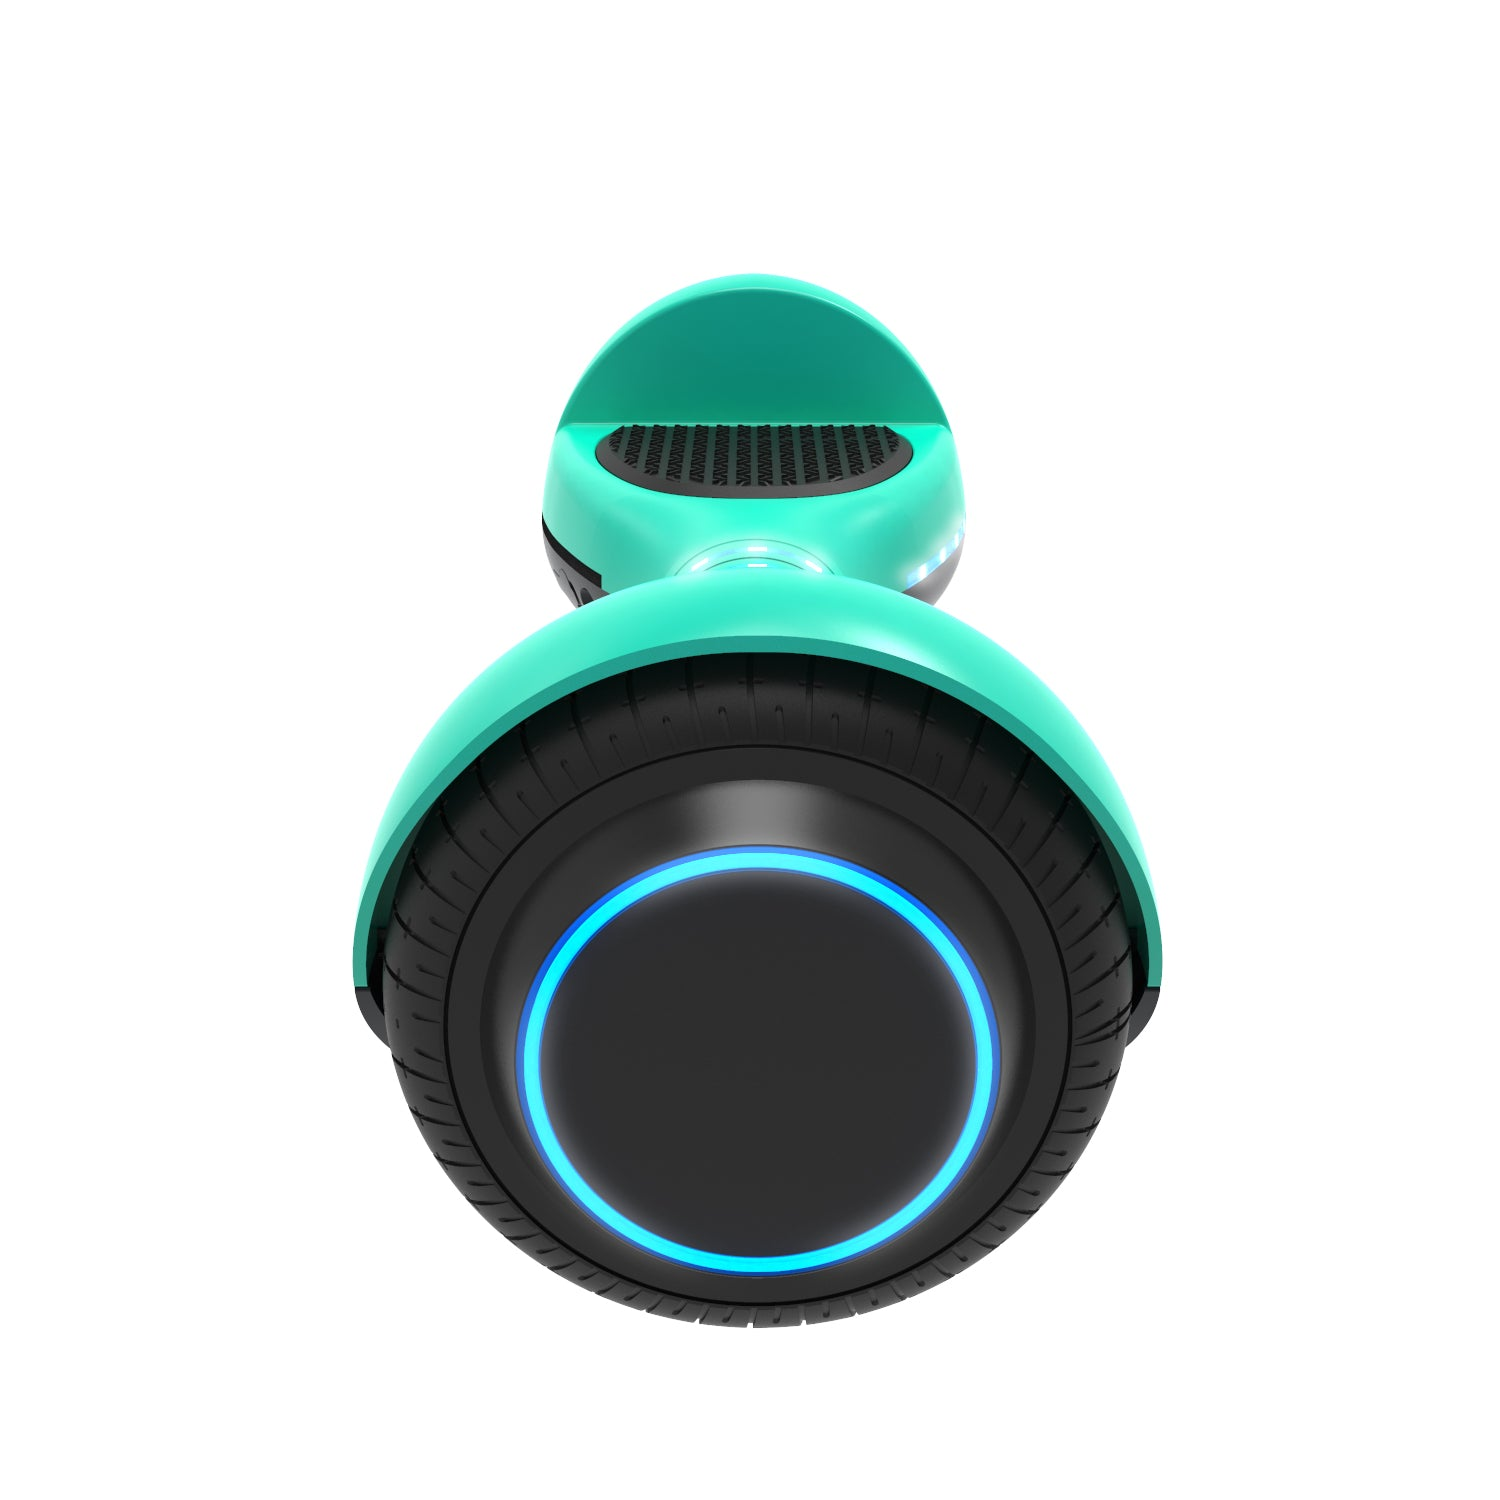 Teal ion hoverboard side view